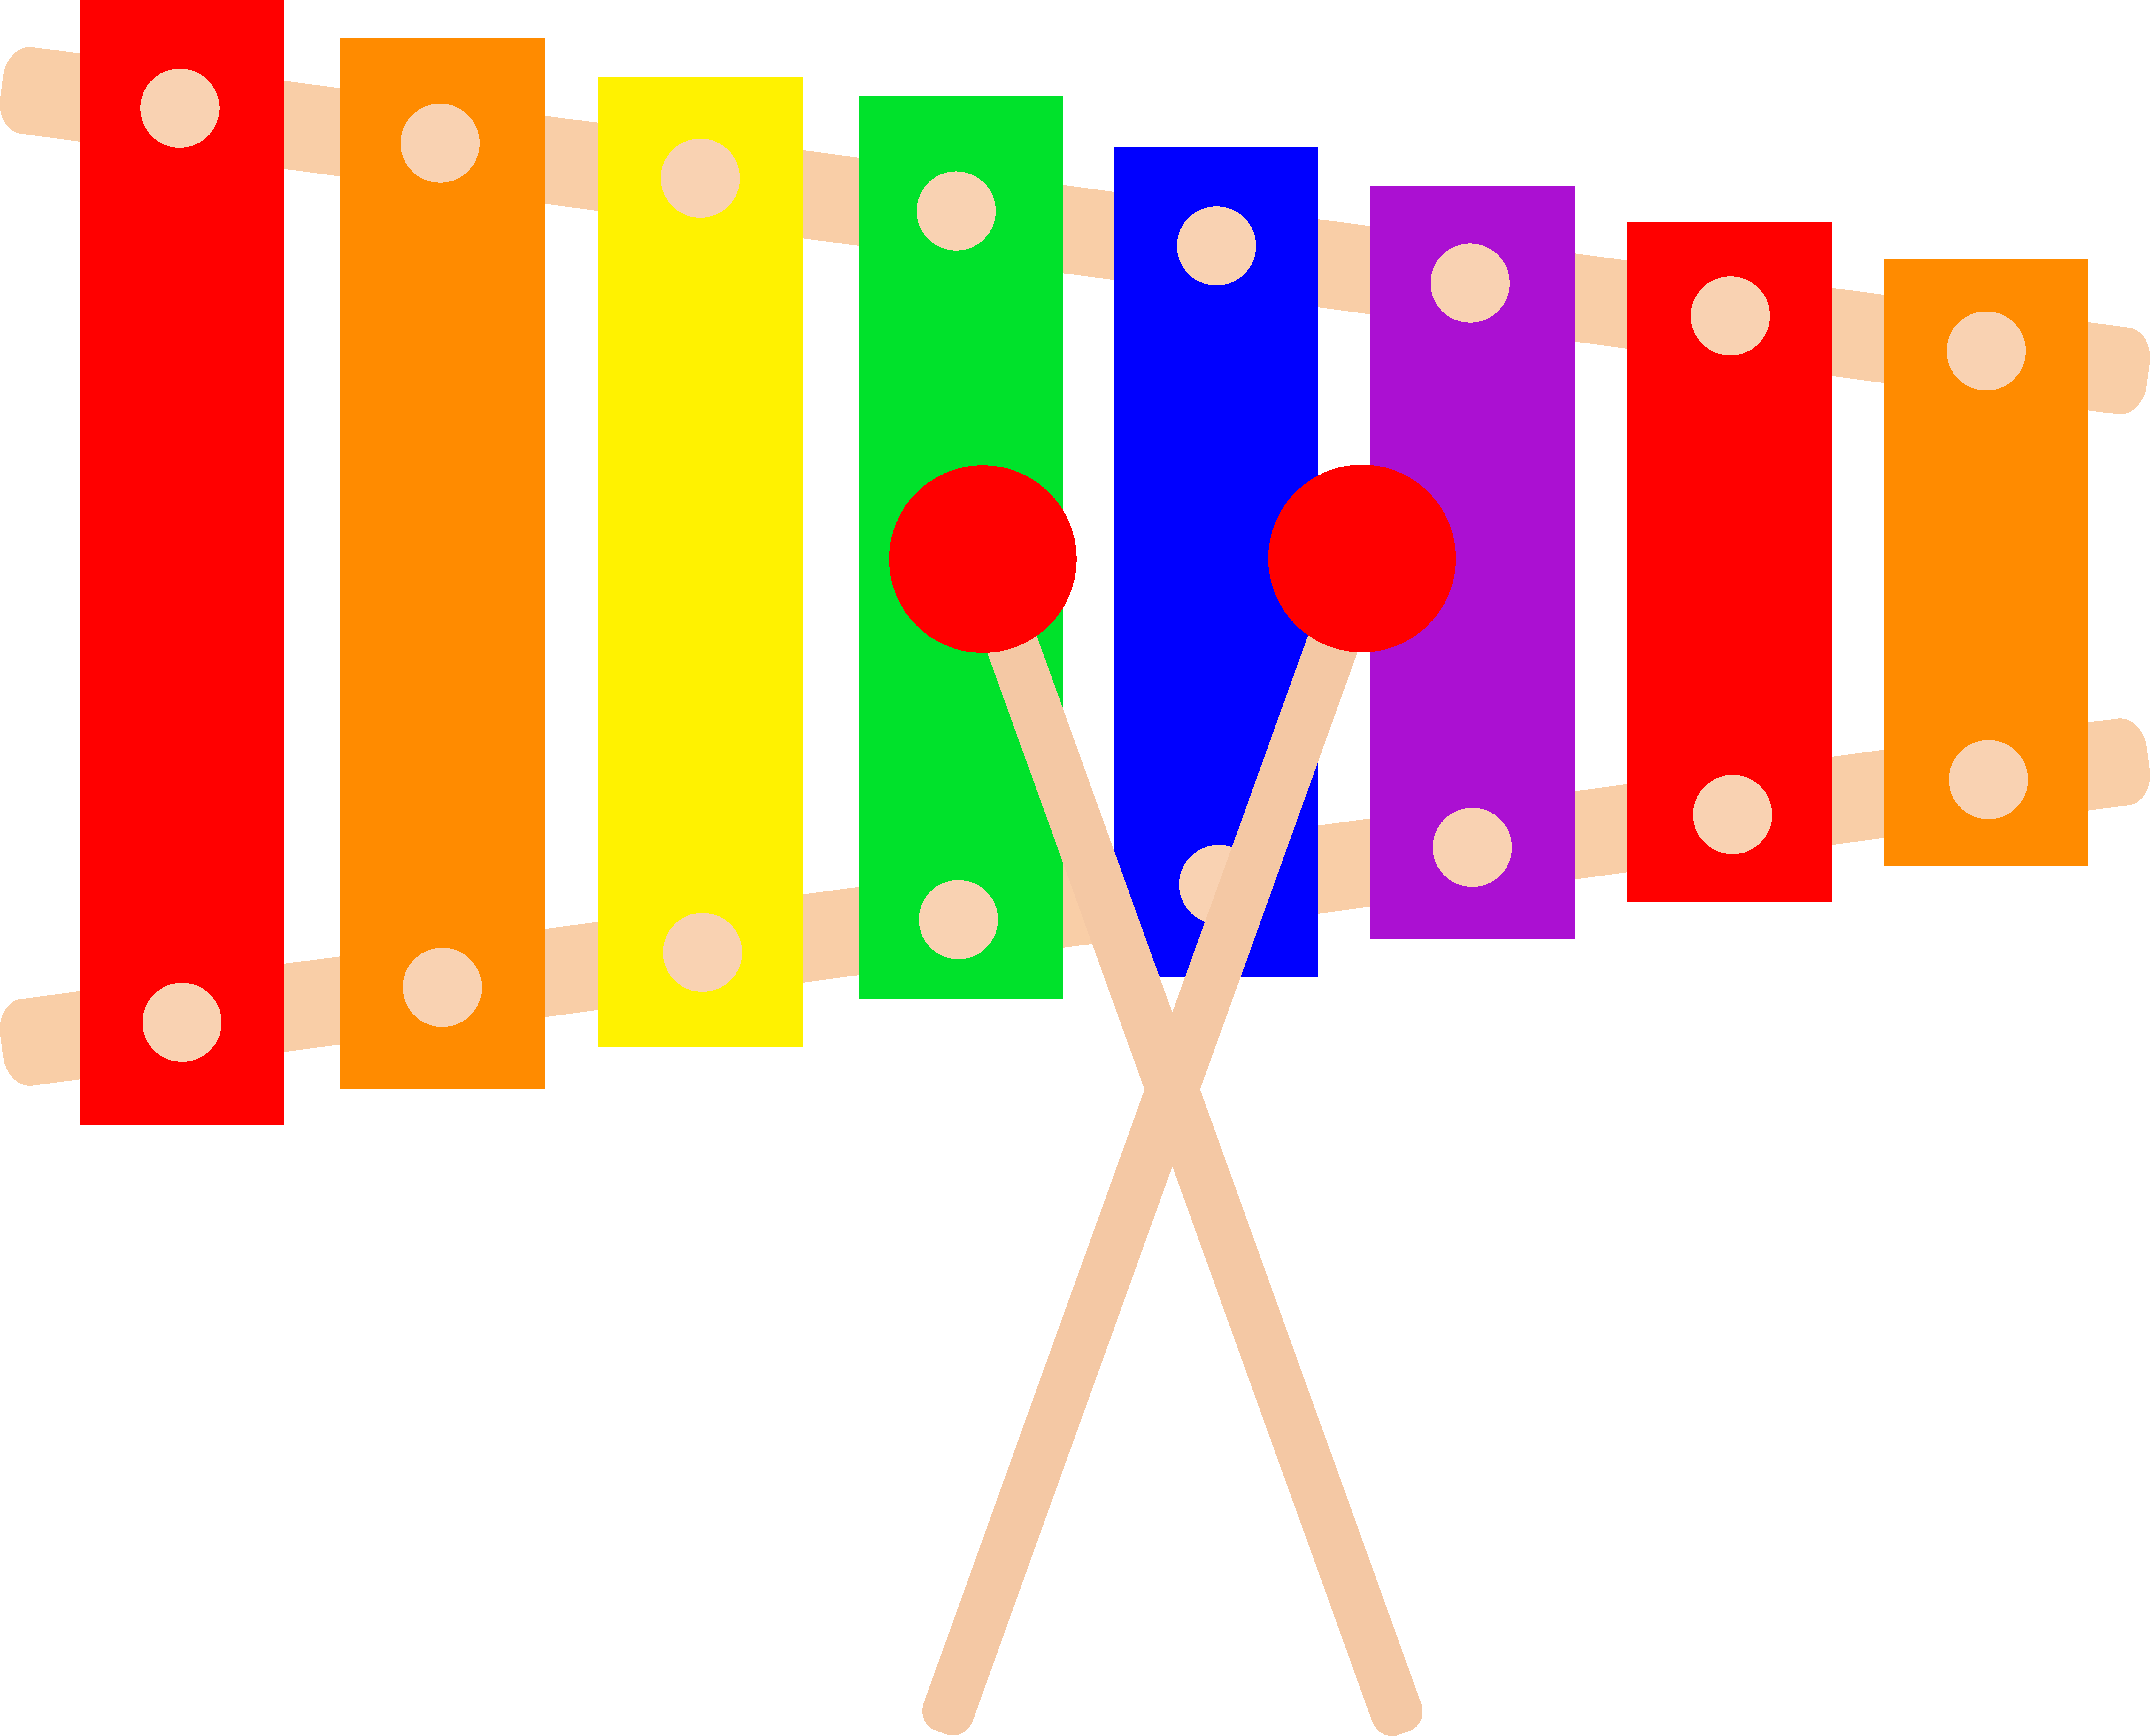 xylophone clip art free clipart best xylophone clipart free xylophone clipart images